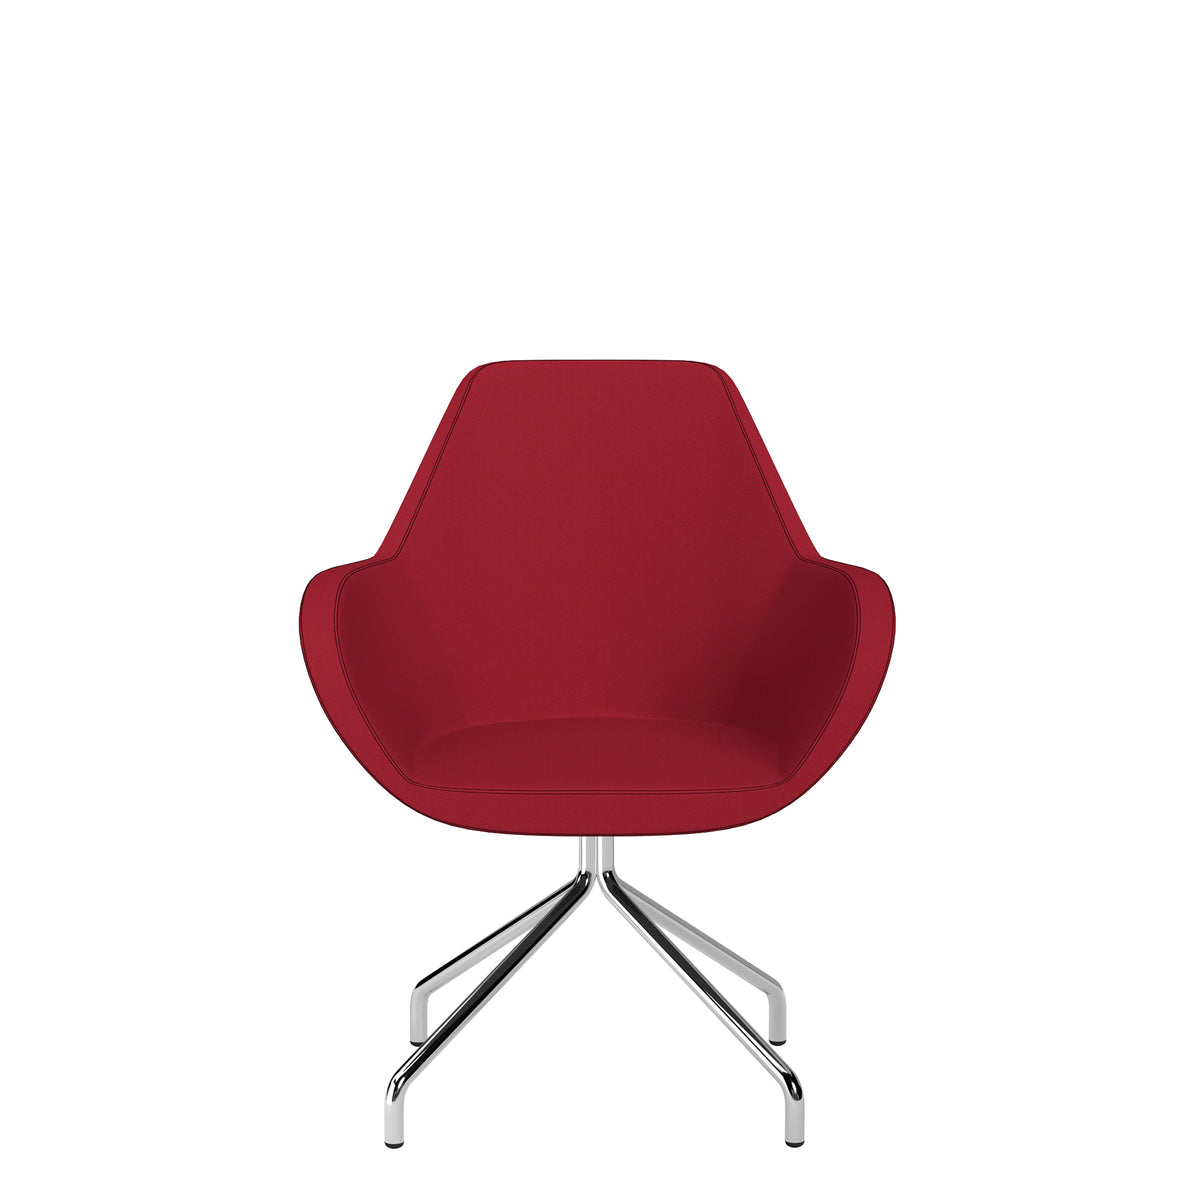 Spacestor Office Fan Chair with Swivel Base Red